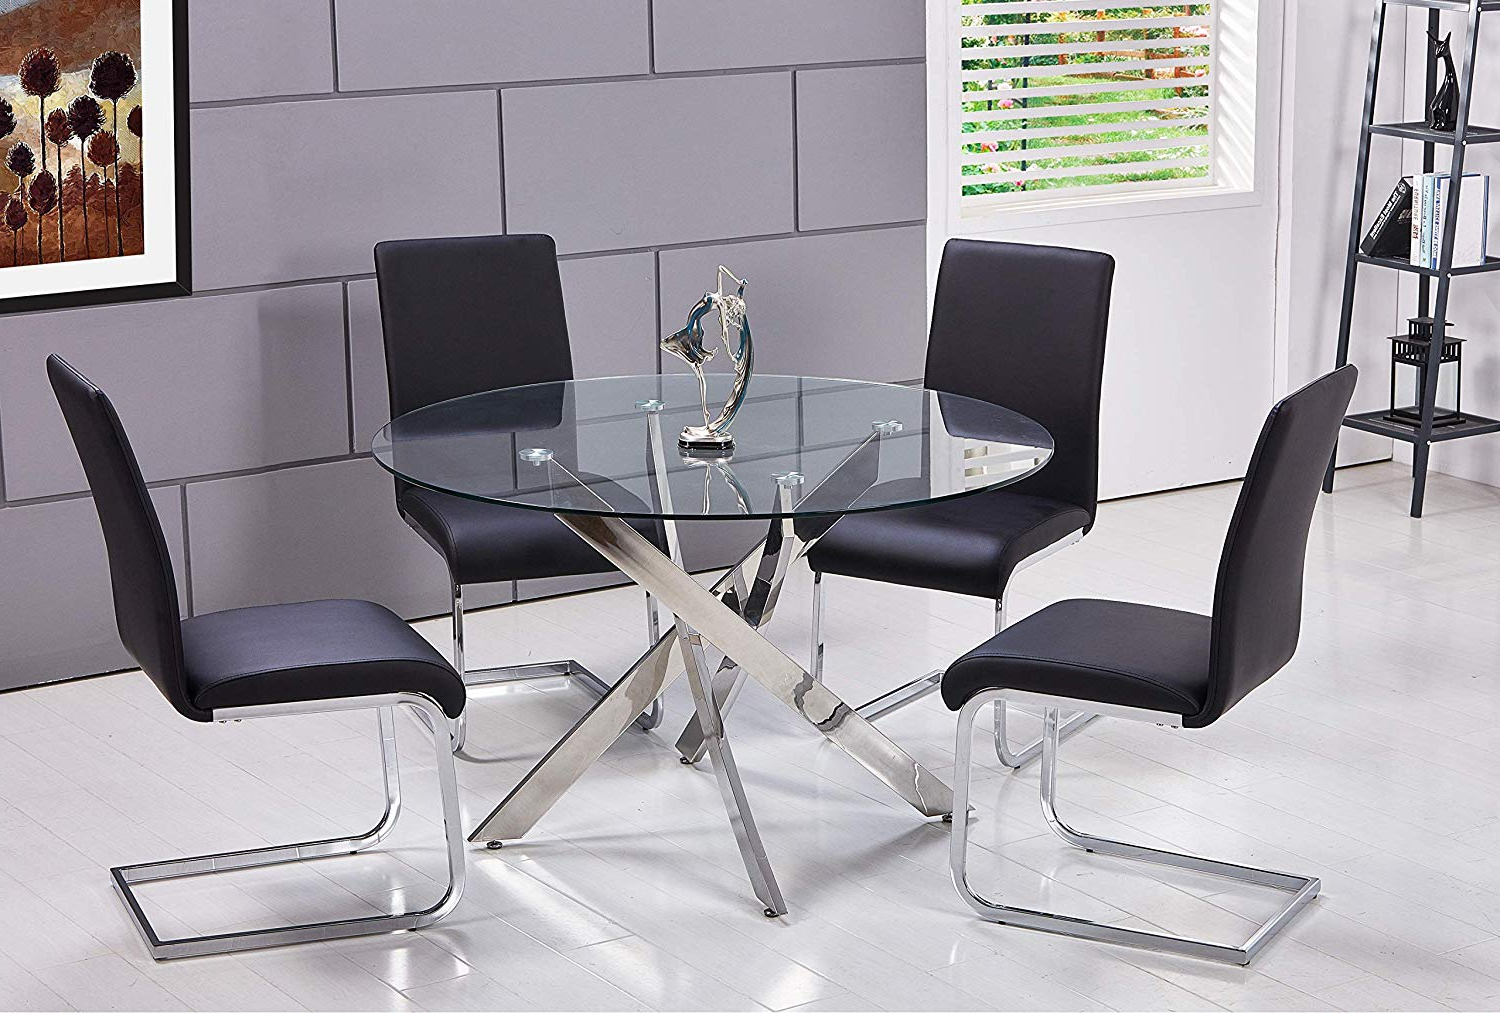 4 Seater Round Wooden Dining Tables With Chrome Legs Pertaining To Latest Amazon – Best Master Furniture T01 Mirage 5 Pcs Glass (View 11 of 30)